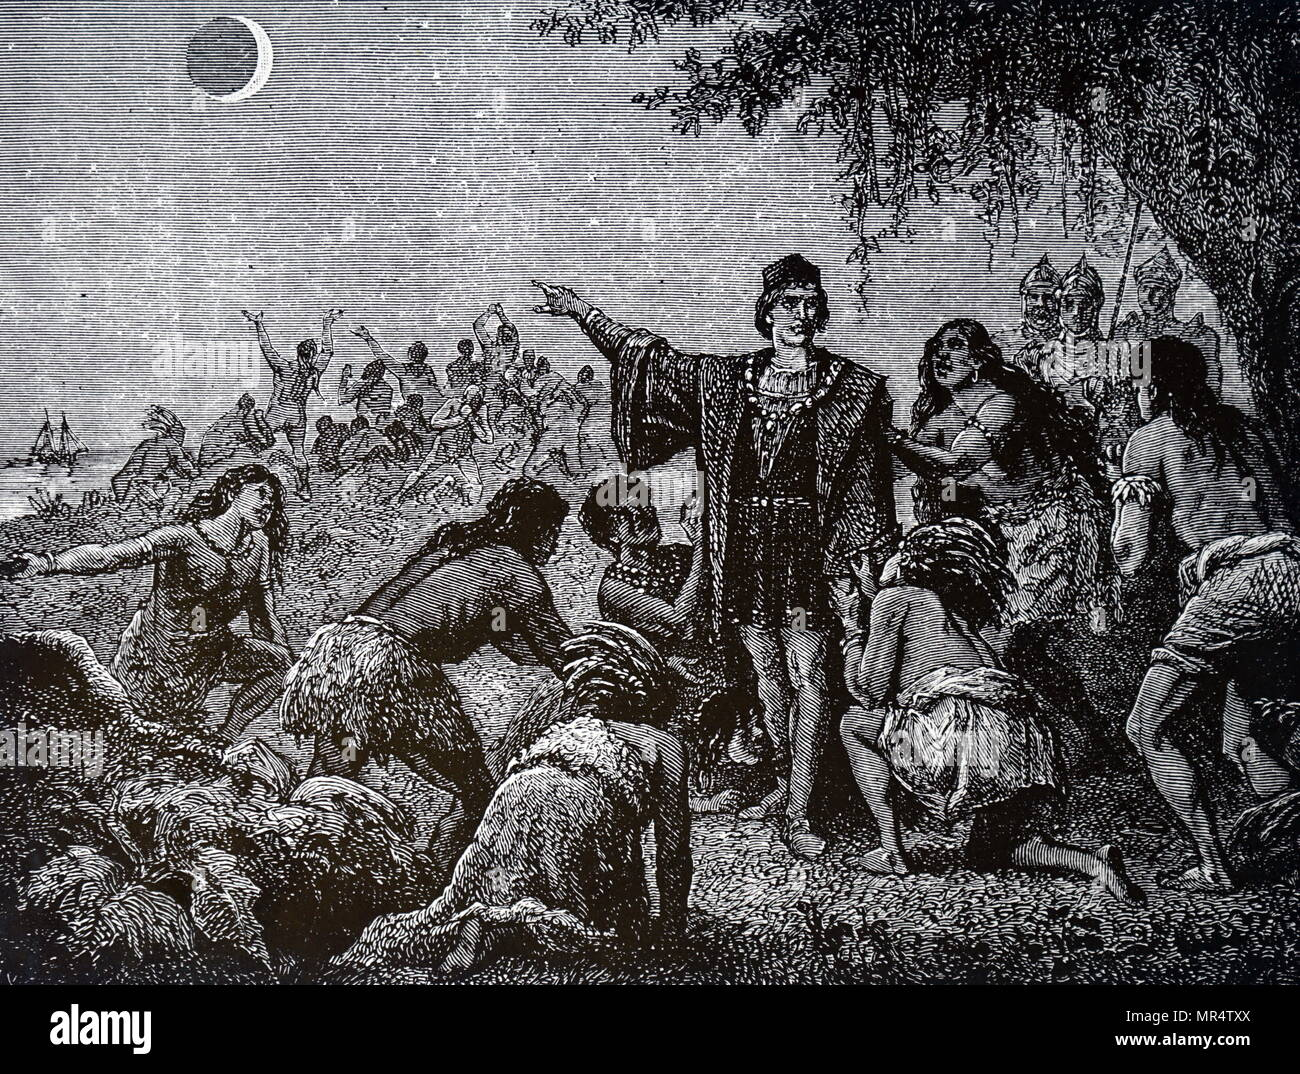 Engraving depicting Indians astonished by the eclipse of the moon, which was foretold by Christopher Columbus. Christopher Columbus (1451-1506) an Italian explorer, navigator, and colonizer. Dated 19th century - Stock Image